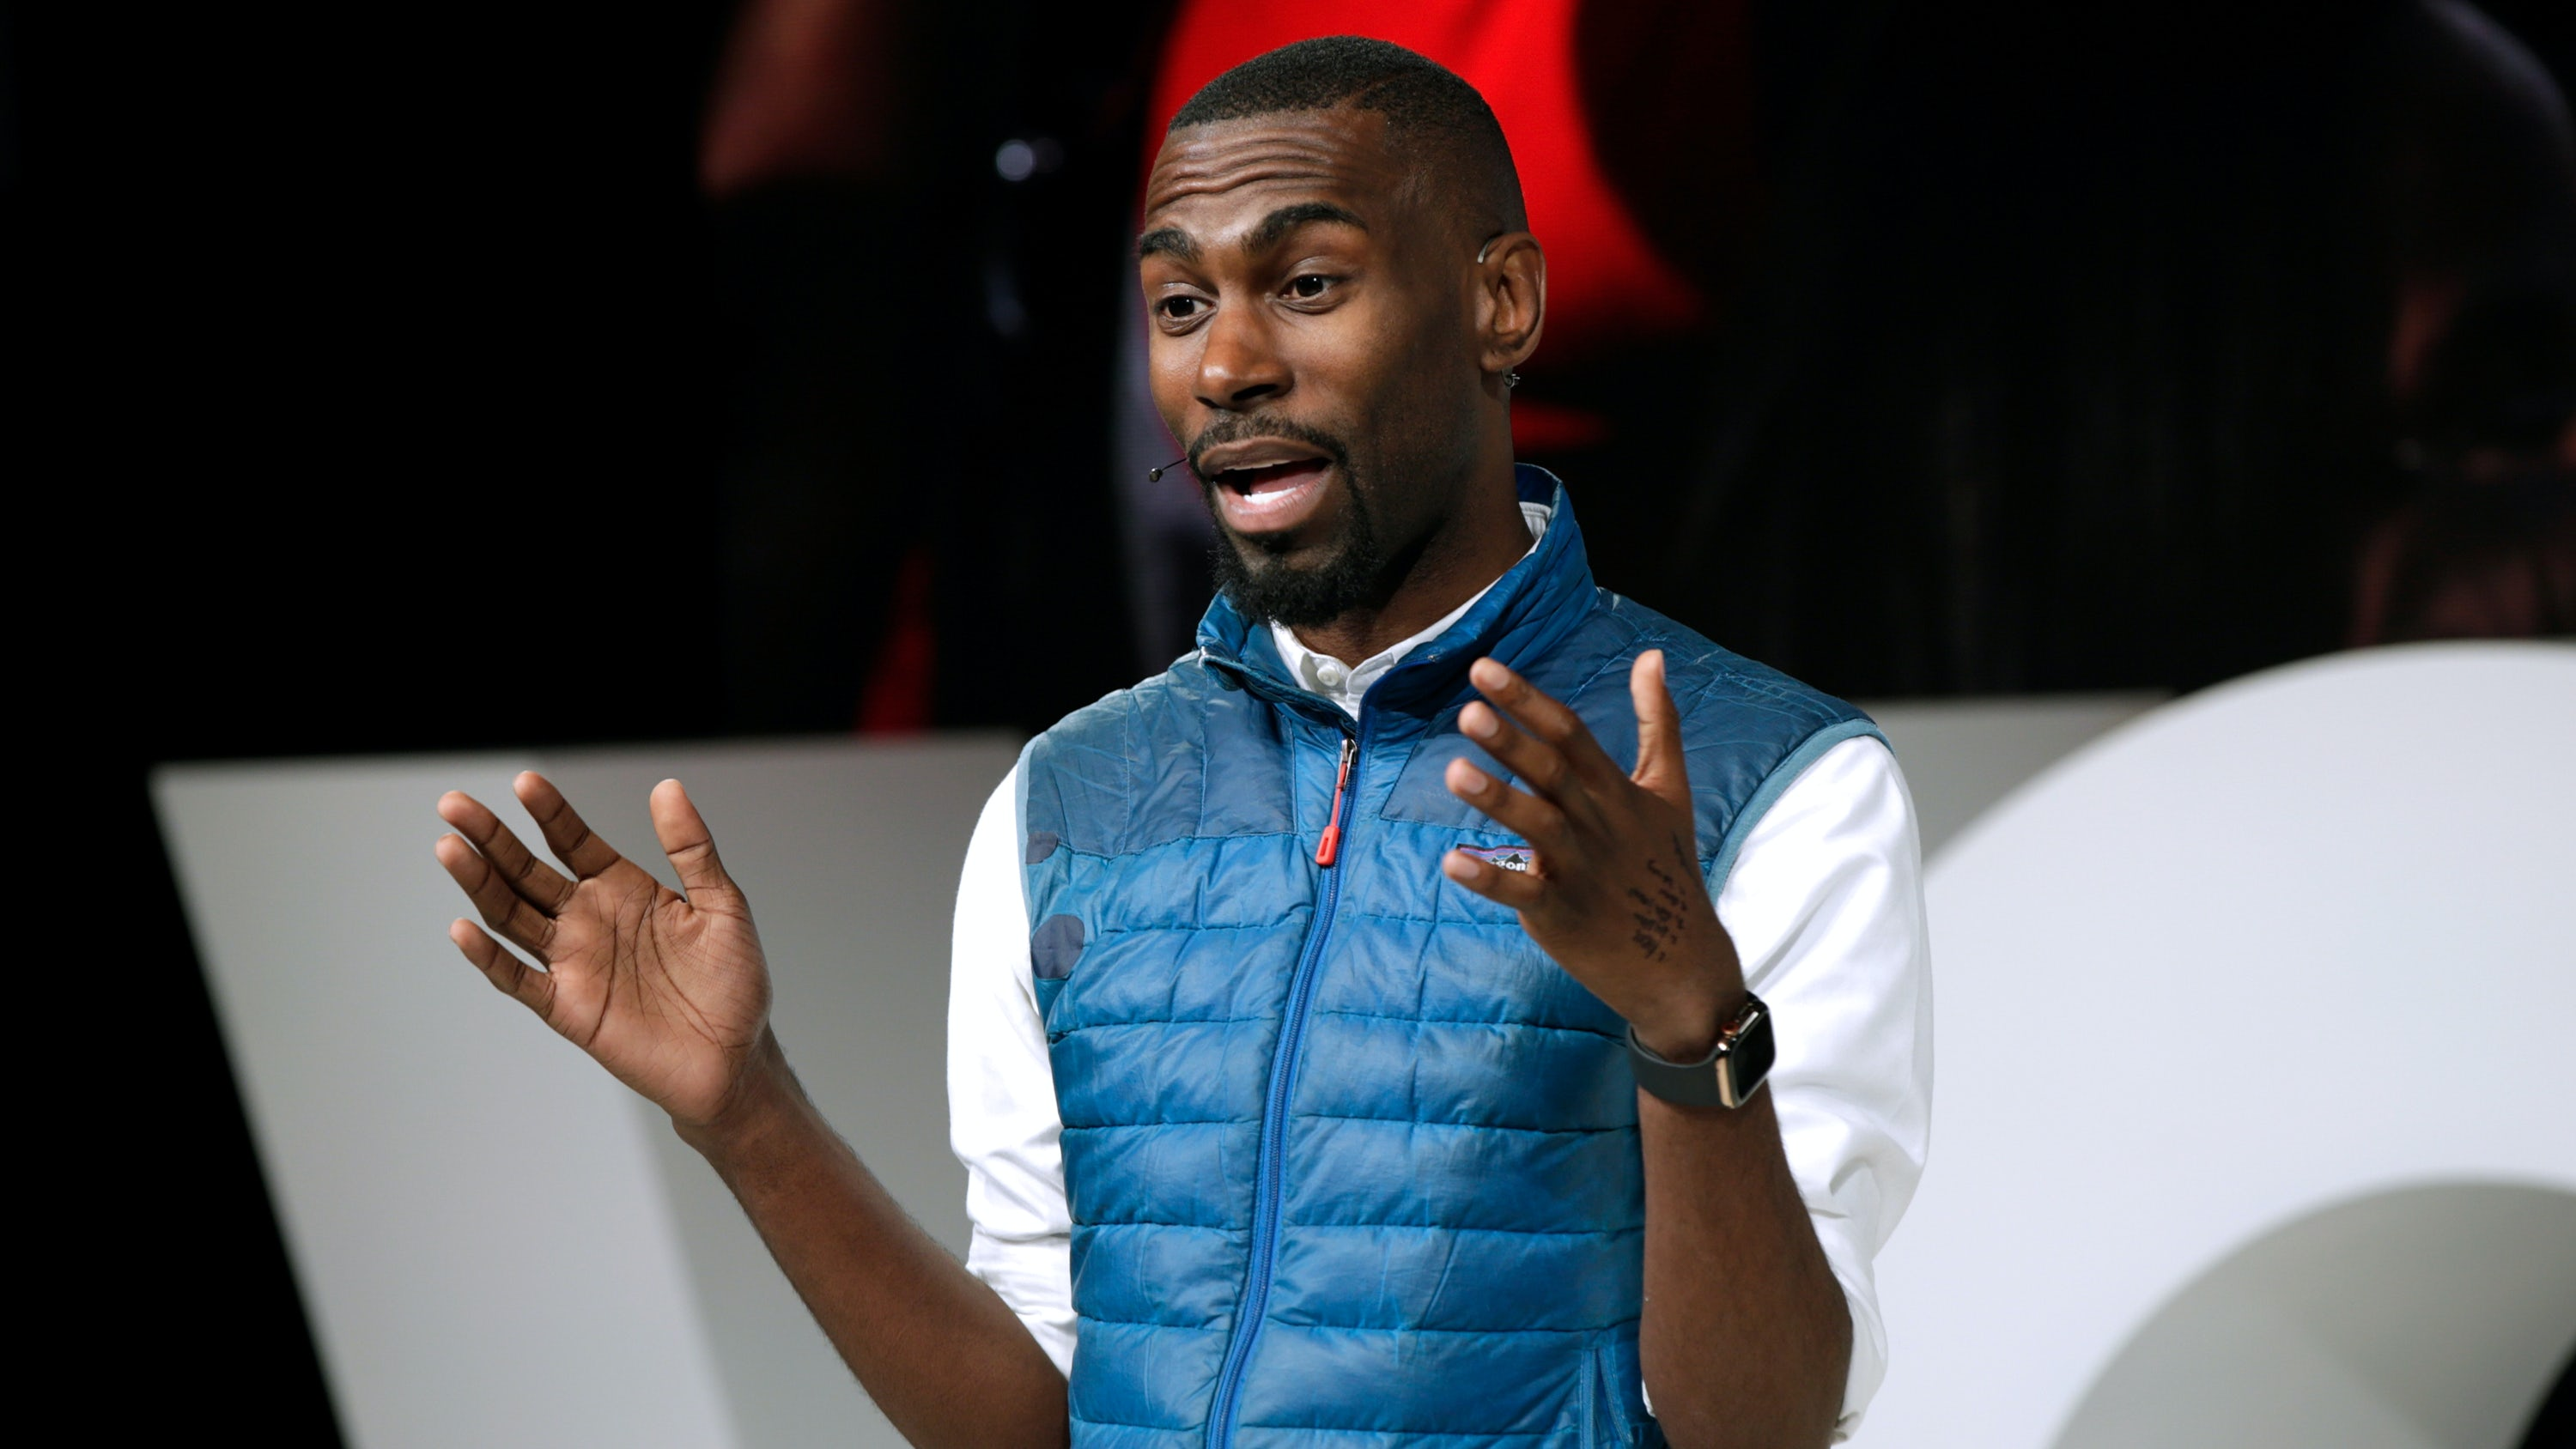 The BoF Podcast: Activist DeRay Mckesson on 'Sharing the Cognitive Burden' of Social Issues